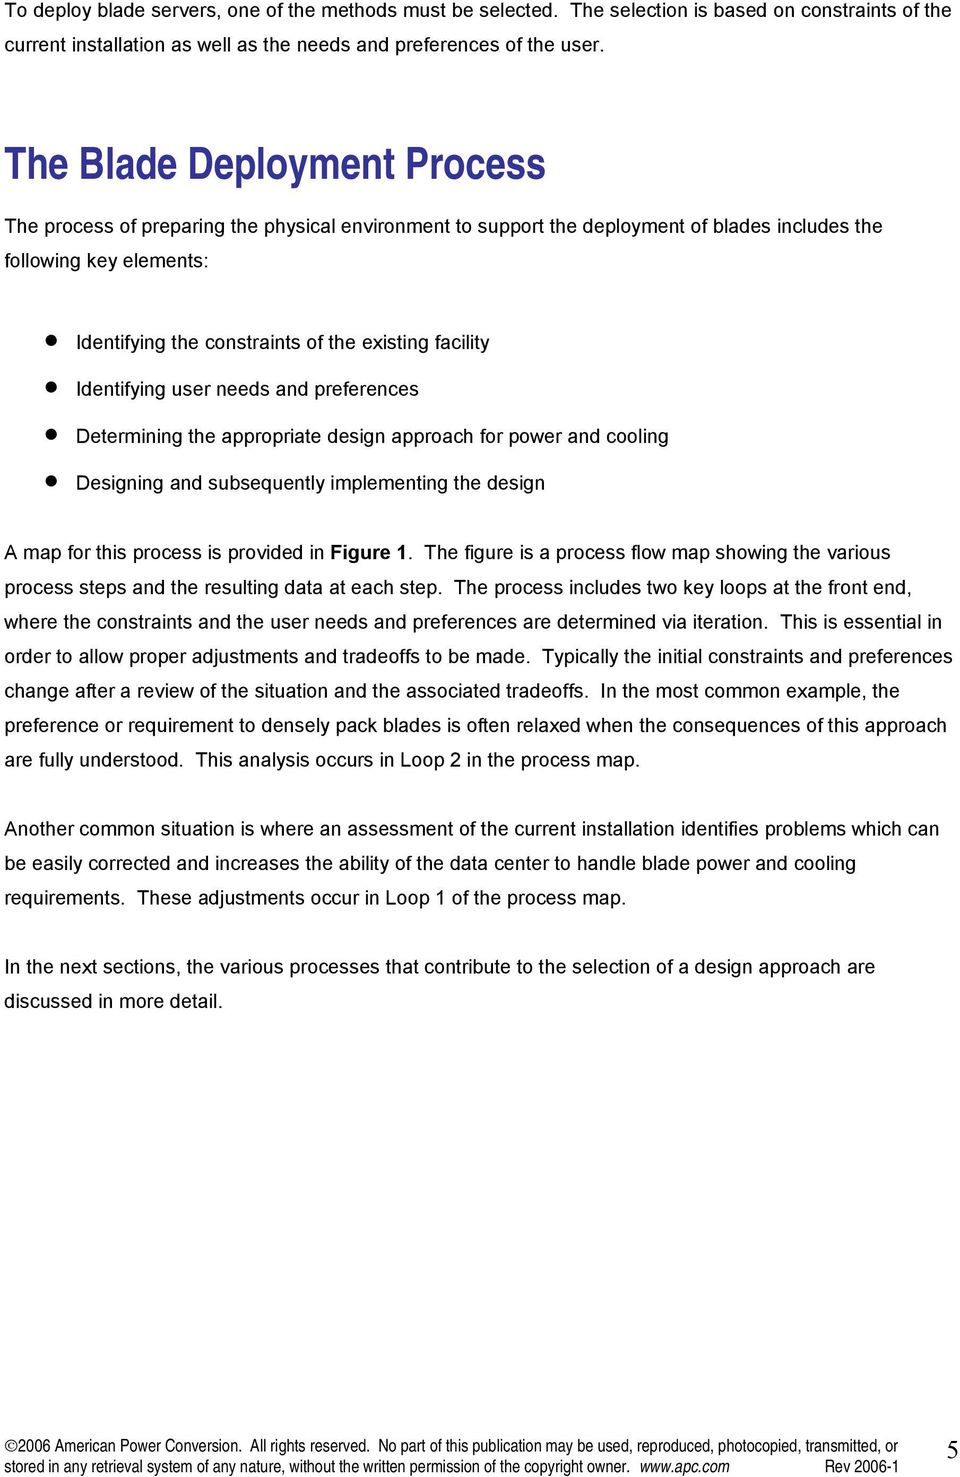 facility Identifying user needs and preferences Determining the appropriate design approach for power and cooling Designing and subsequently implementing the design A map for this process is provided